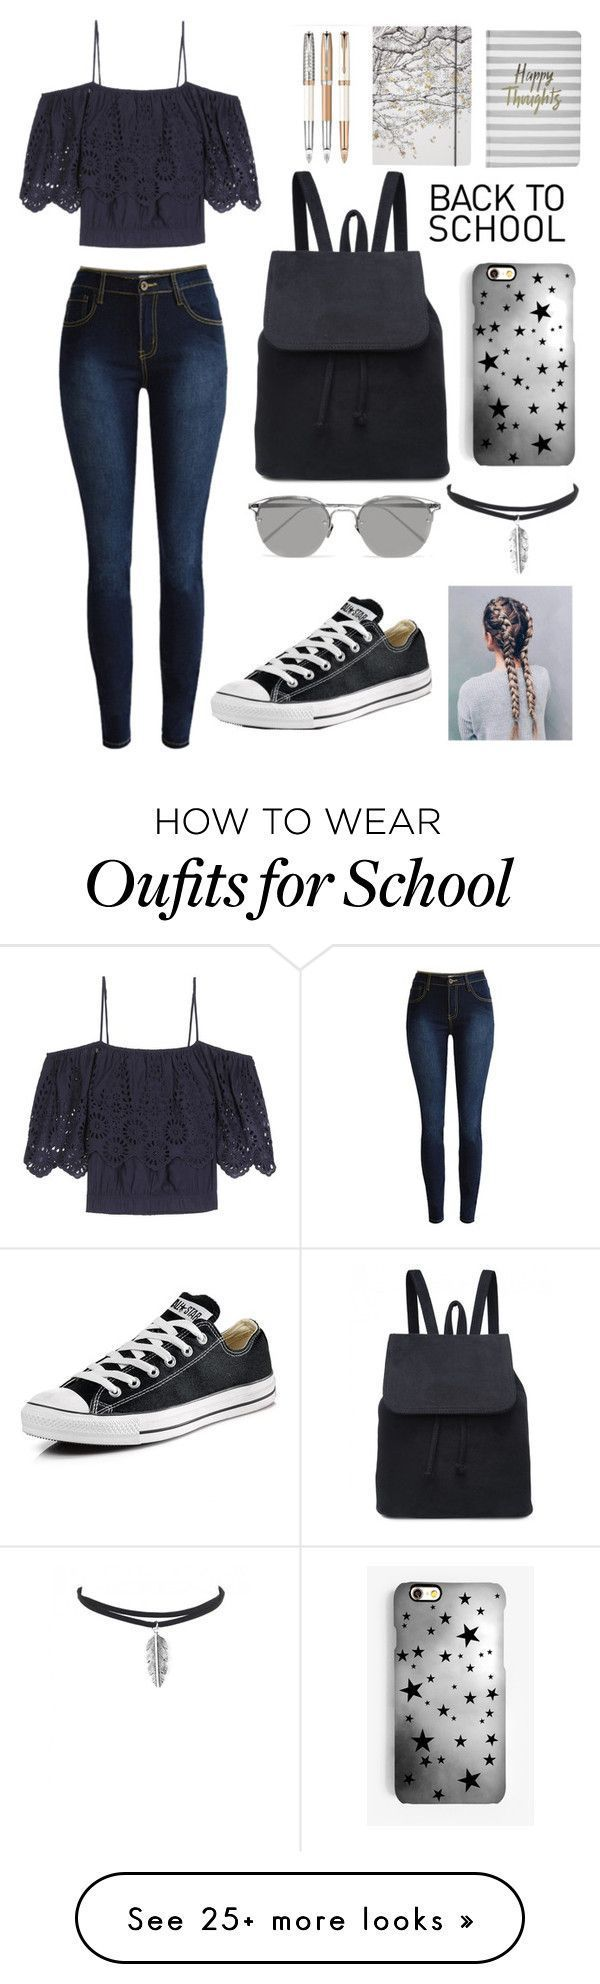 """""""Back To School Outfit"""" by kirsty-mckenzie44 on Polyvore featuring Ganni, Boohoo, Go Stationery, Converse, Rianna Phillips and Linda Farrow"""